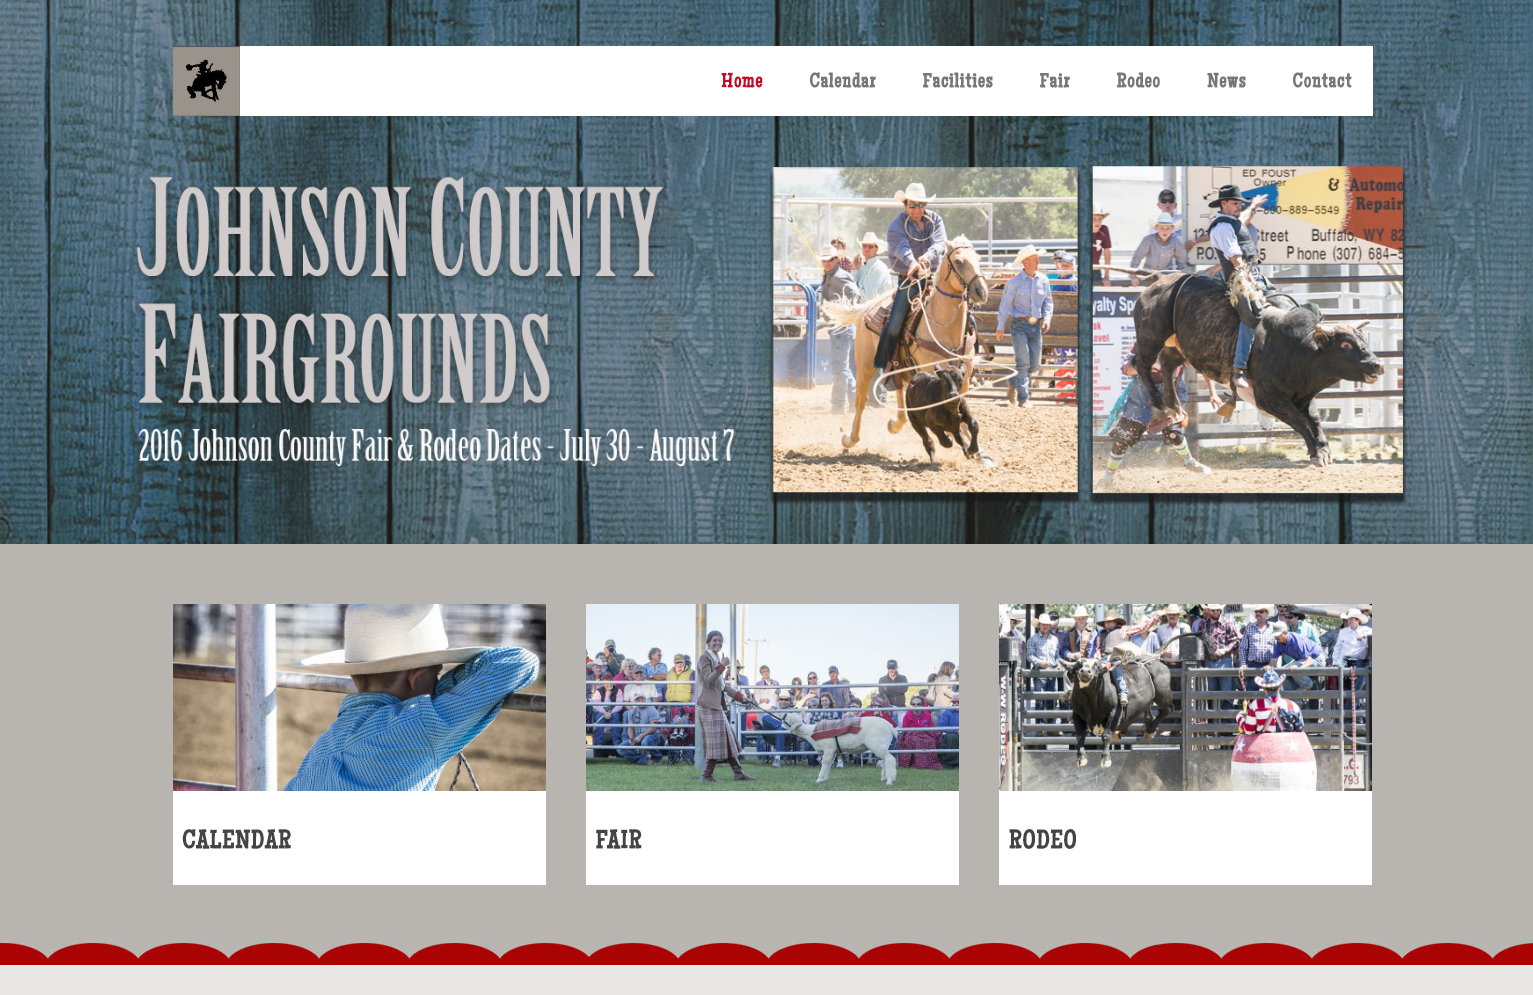 Johnson County Fairgrounds